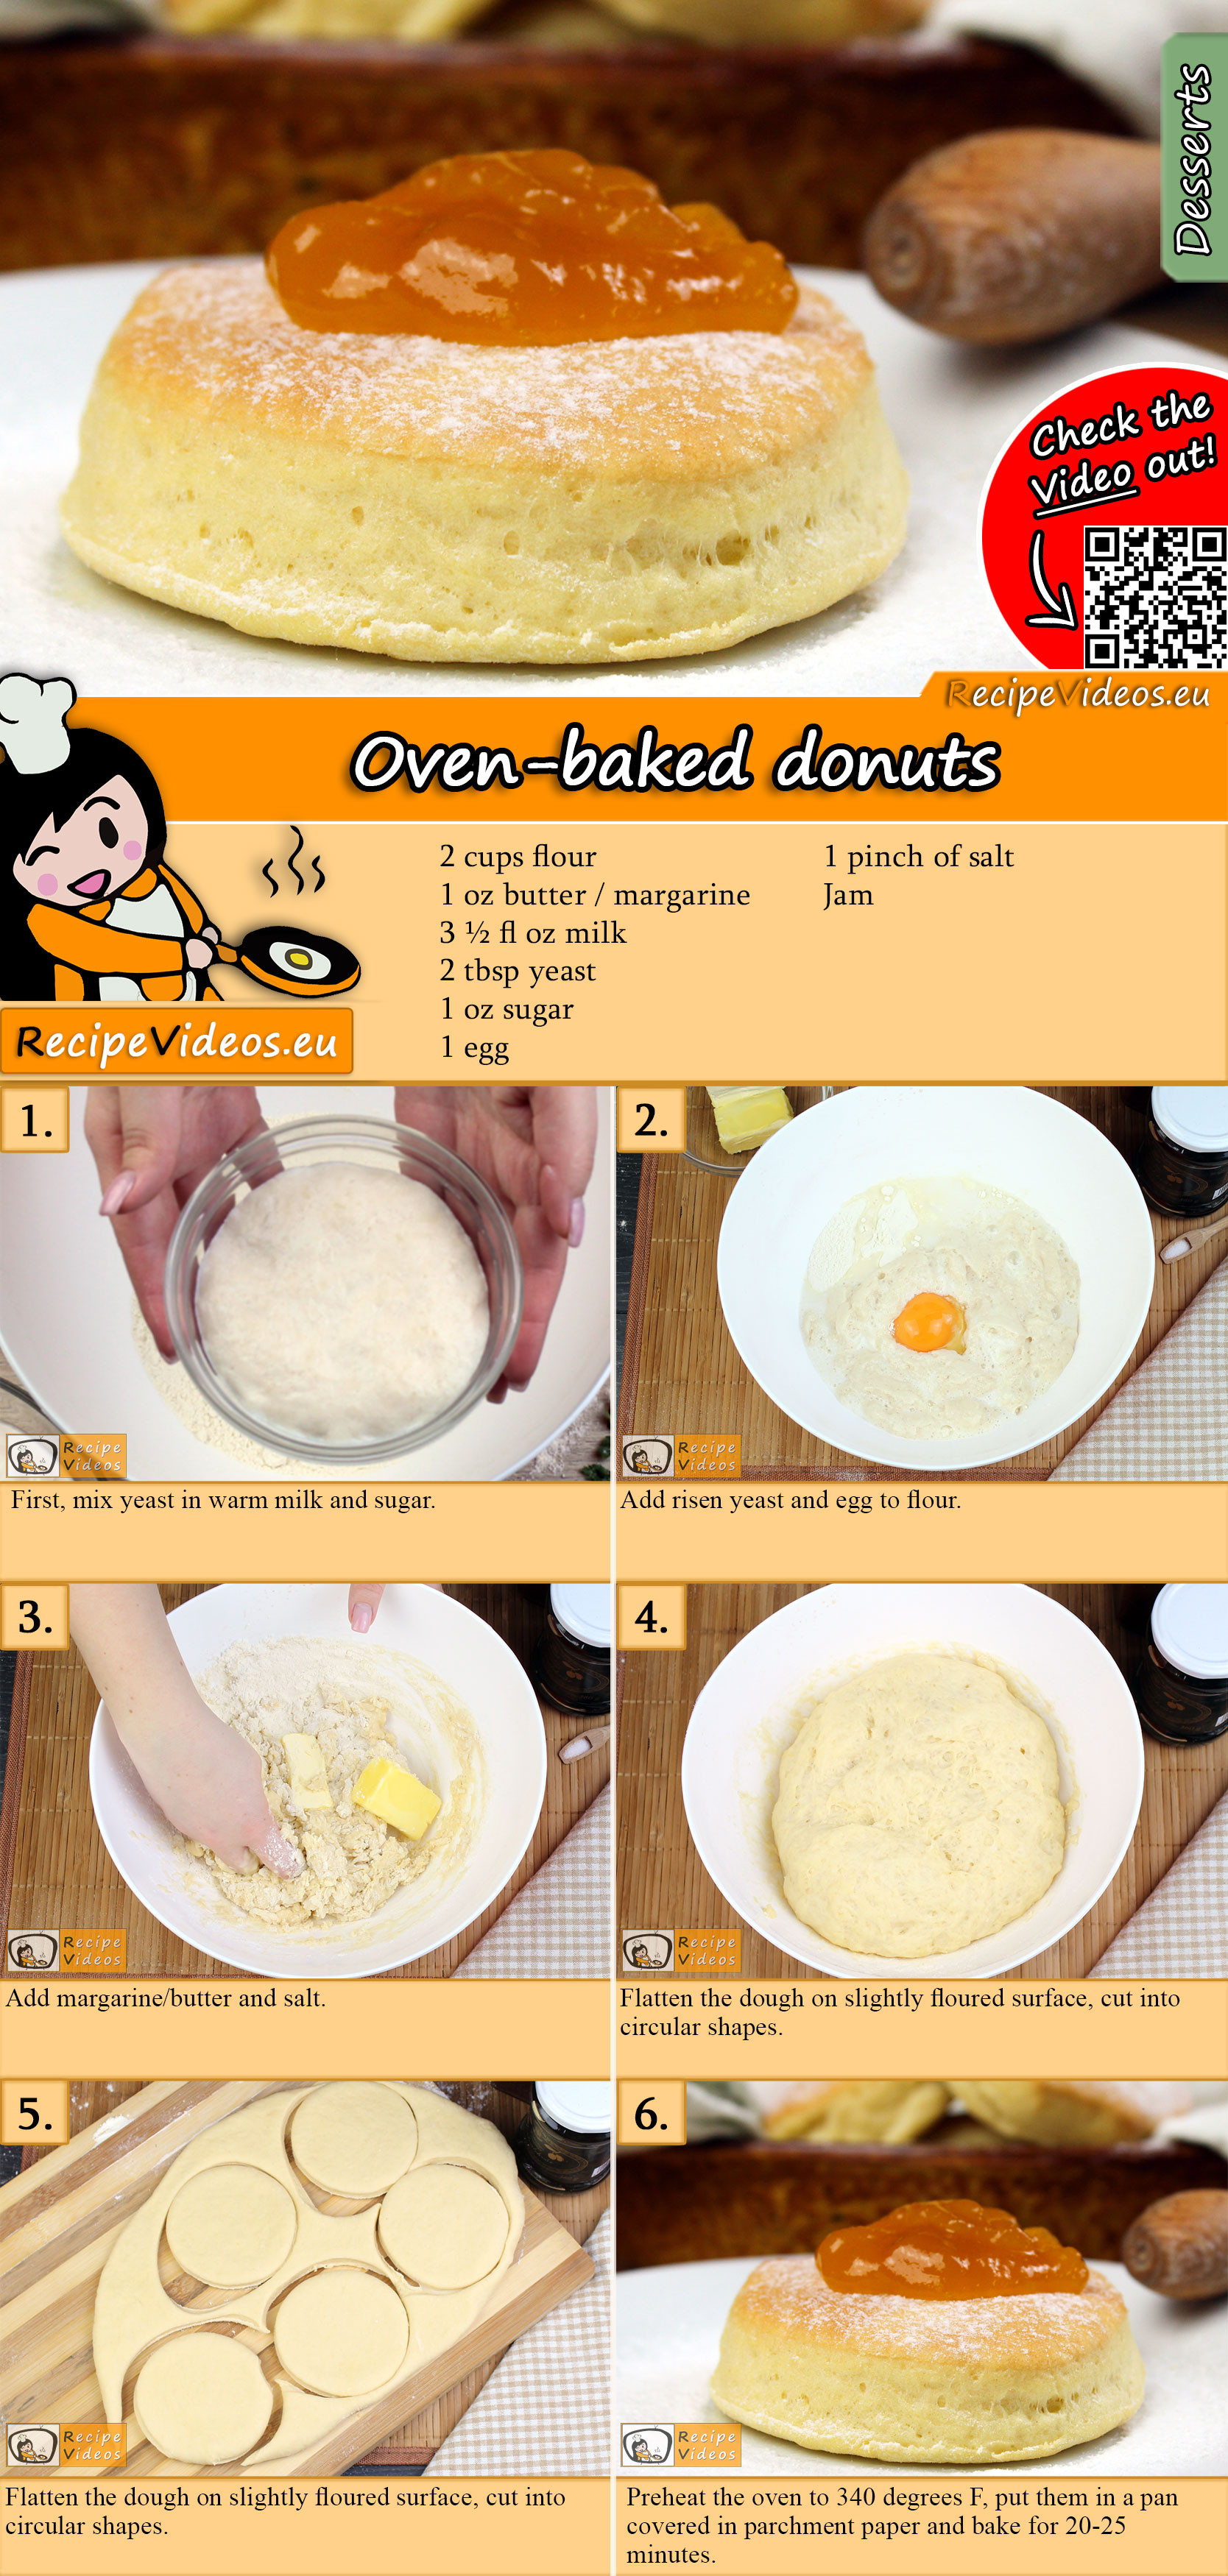 Oven-baked donuts recipe with video